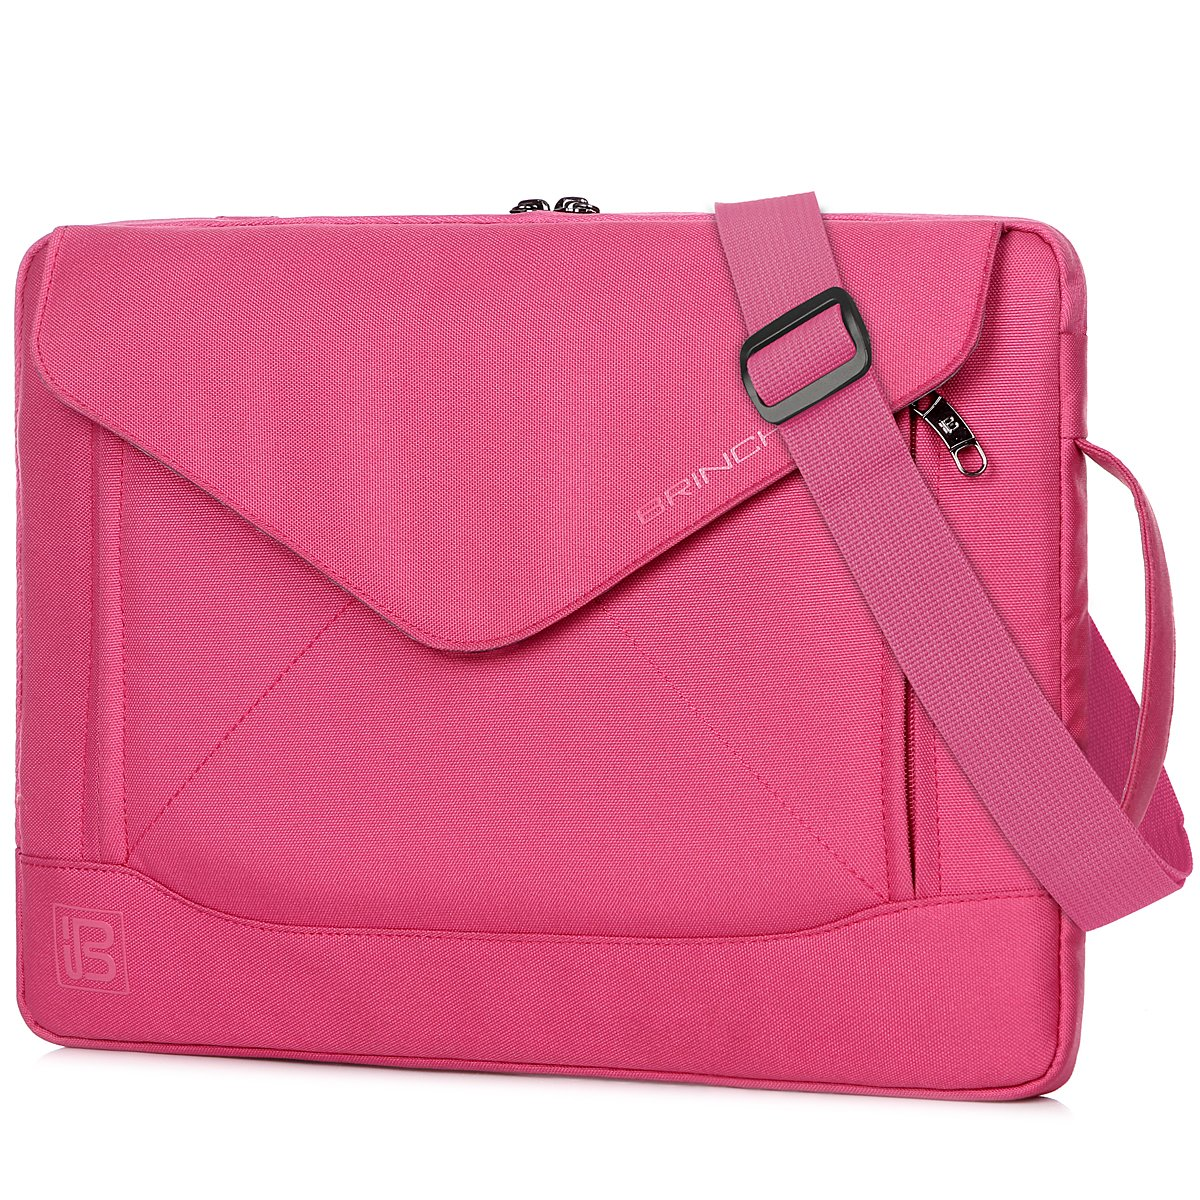 BRINCH Fashion Durable Envelope Nylon Fabric 15 - 15.6 Inch Laptop / Notebook / Macbook / Ultrabook / Tablet Computer Bag Shoulder Carrying Envelope Case Pouch Sleeve With Shoulder Strap Pockets and Card Slots (PINK)